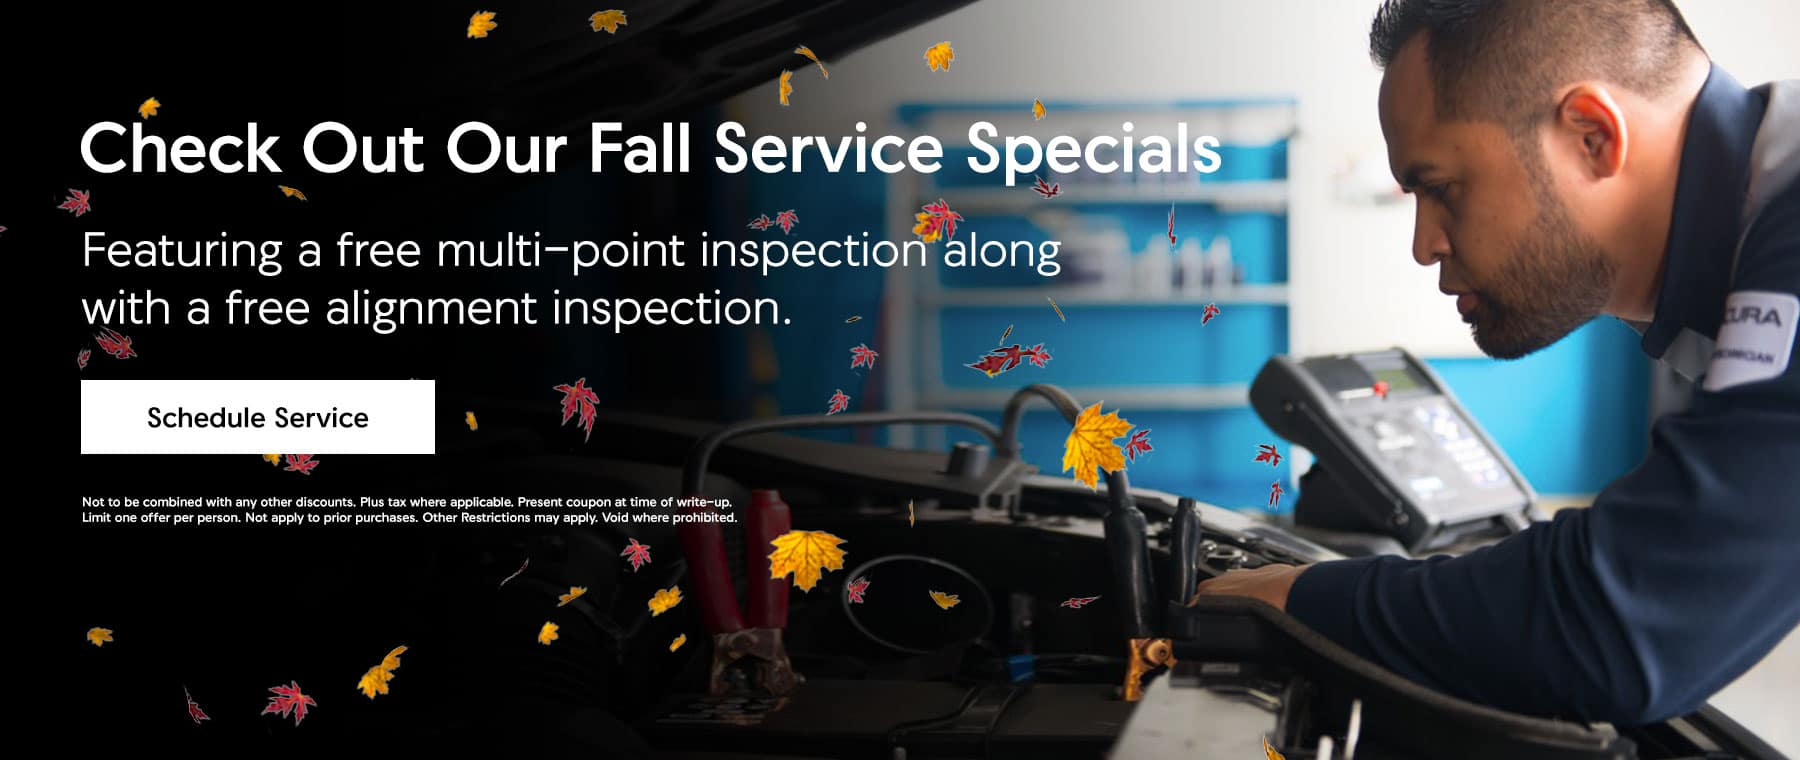 Check Out Our Fall Service Specials